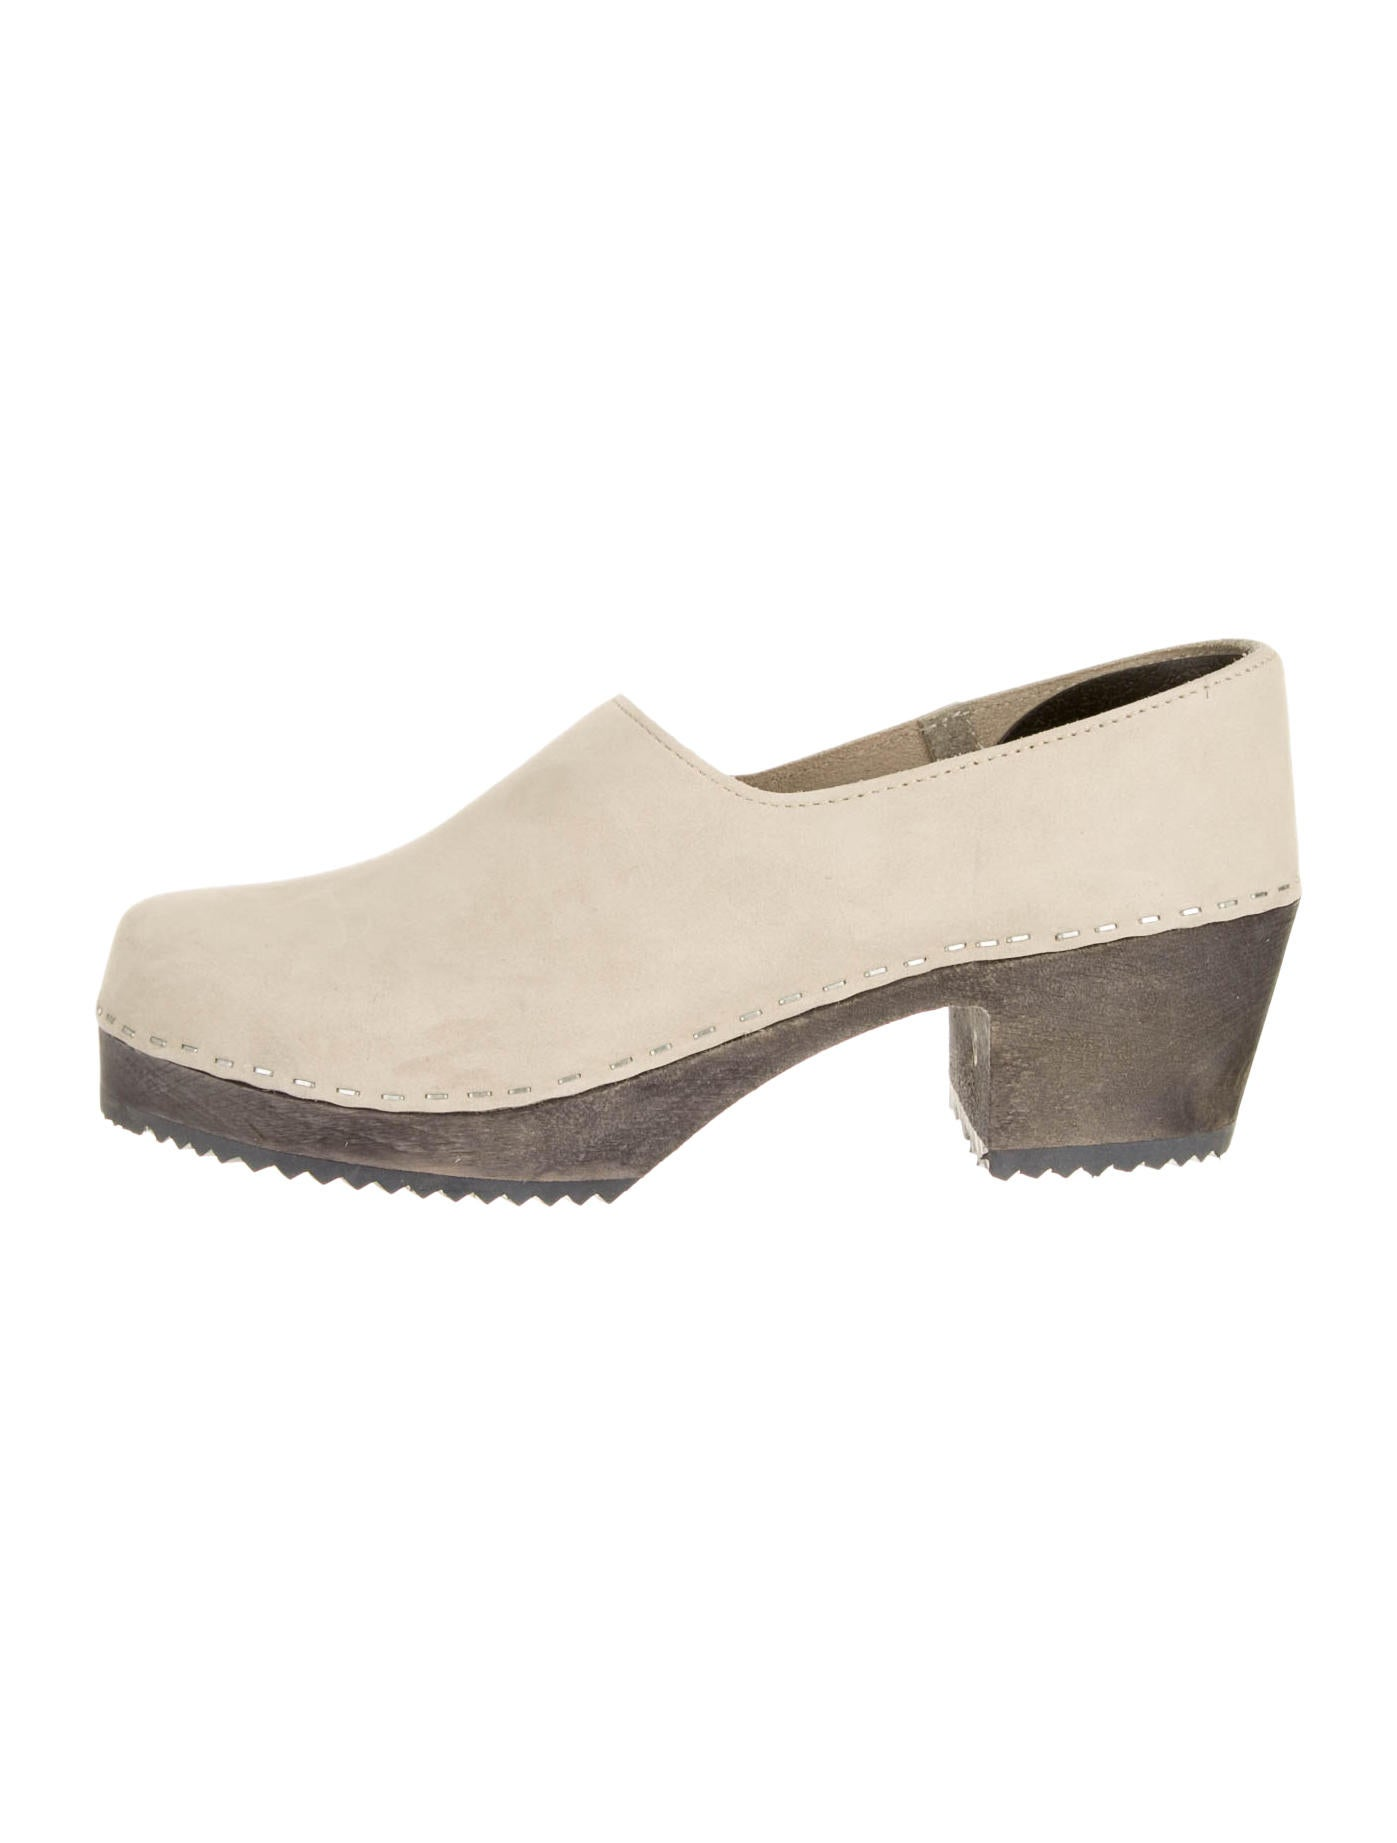 Creatures Of Comfort Shoes Sale